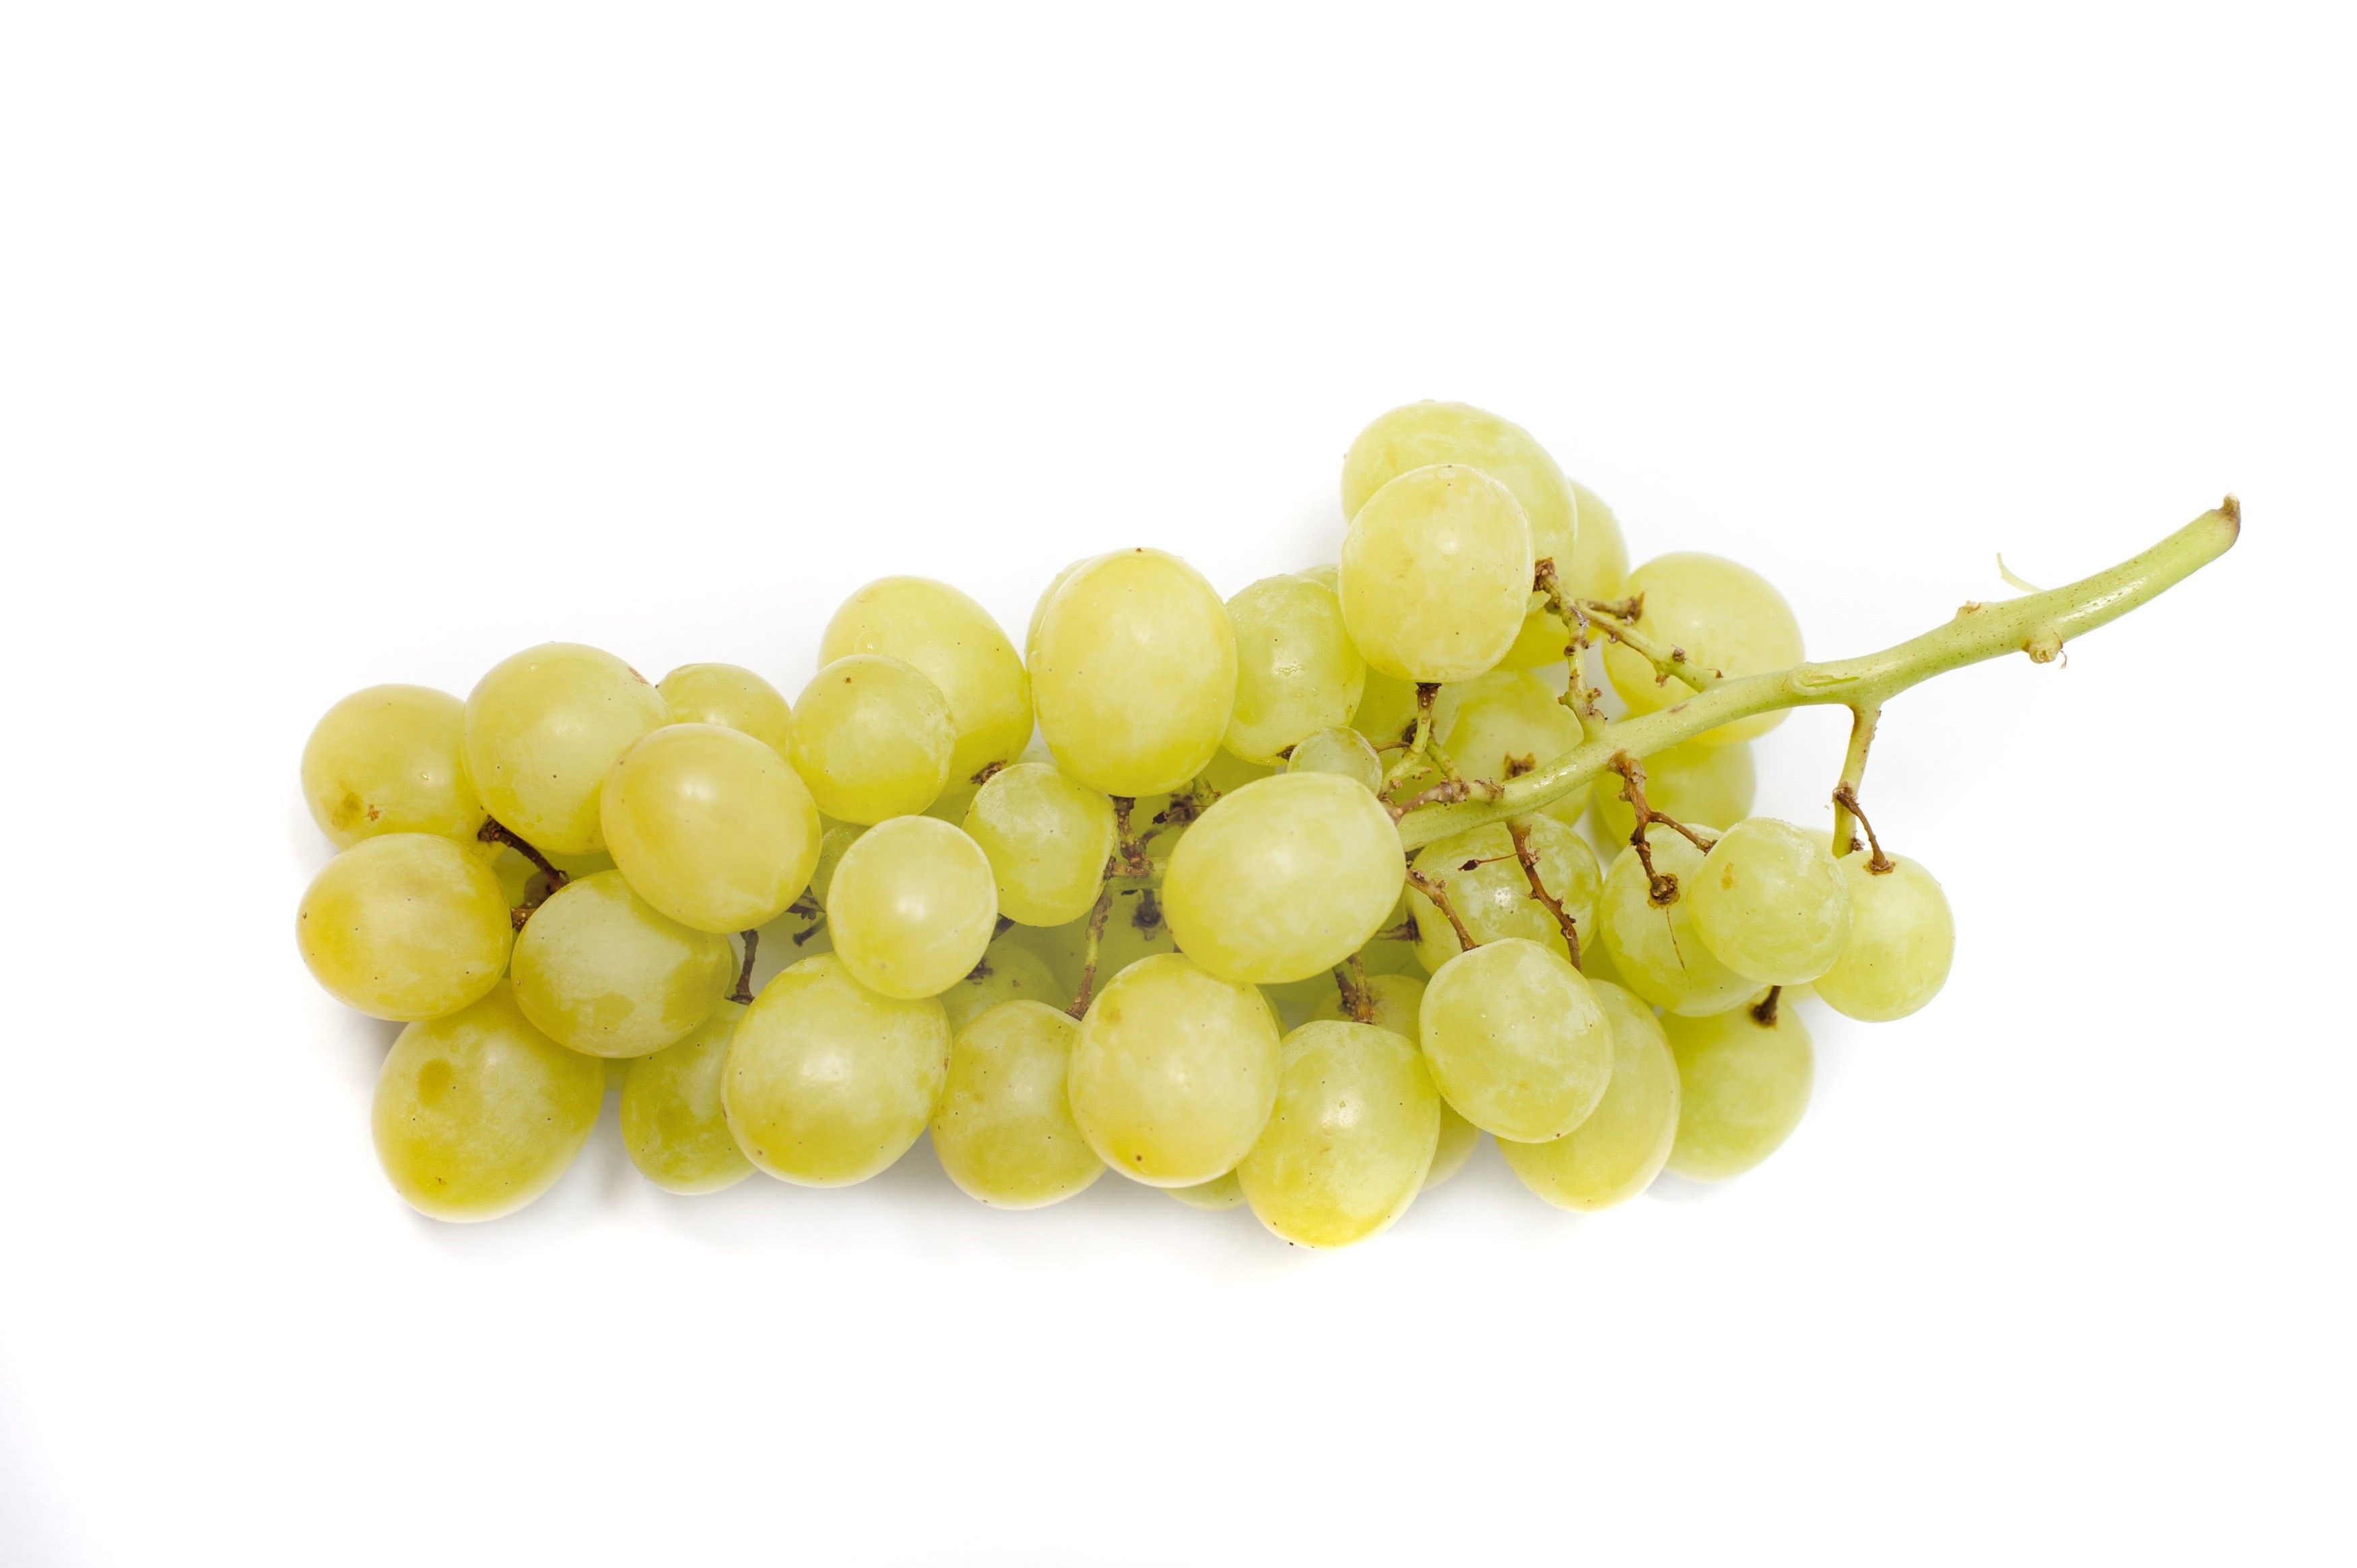 Bunch of fresh green grapes - Free Stock Image